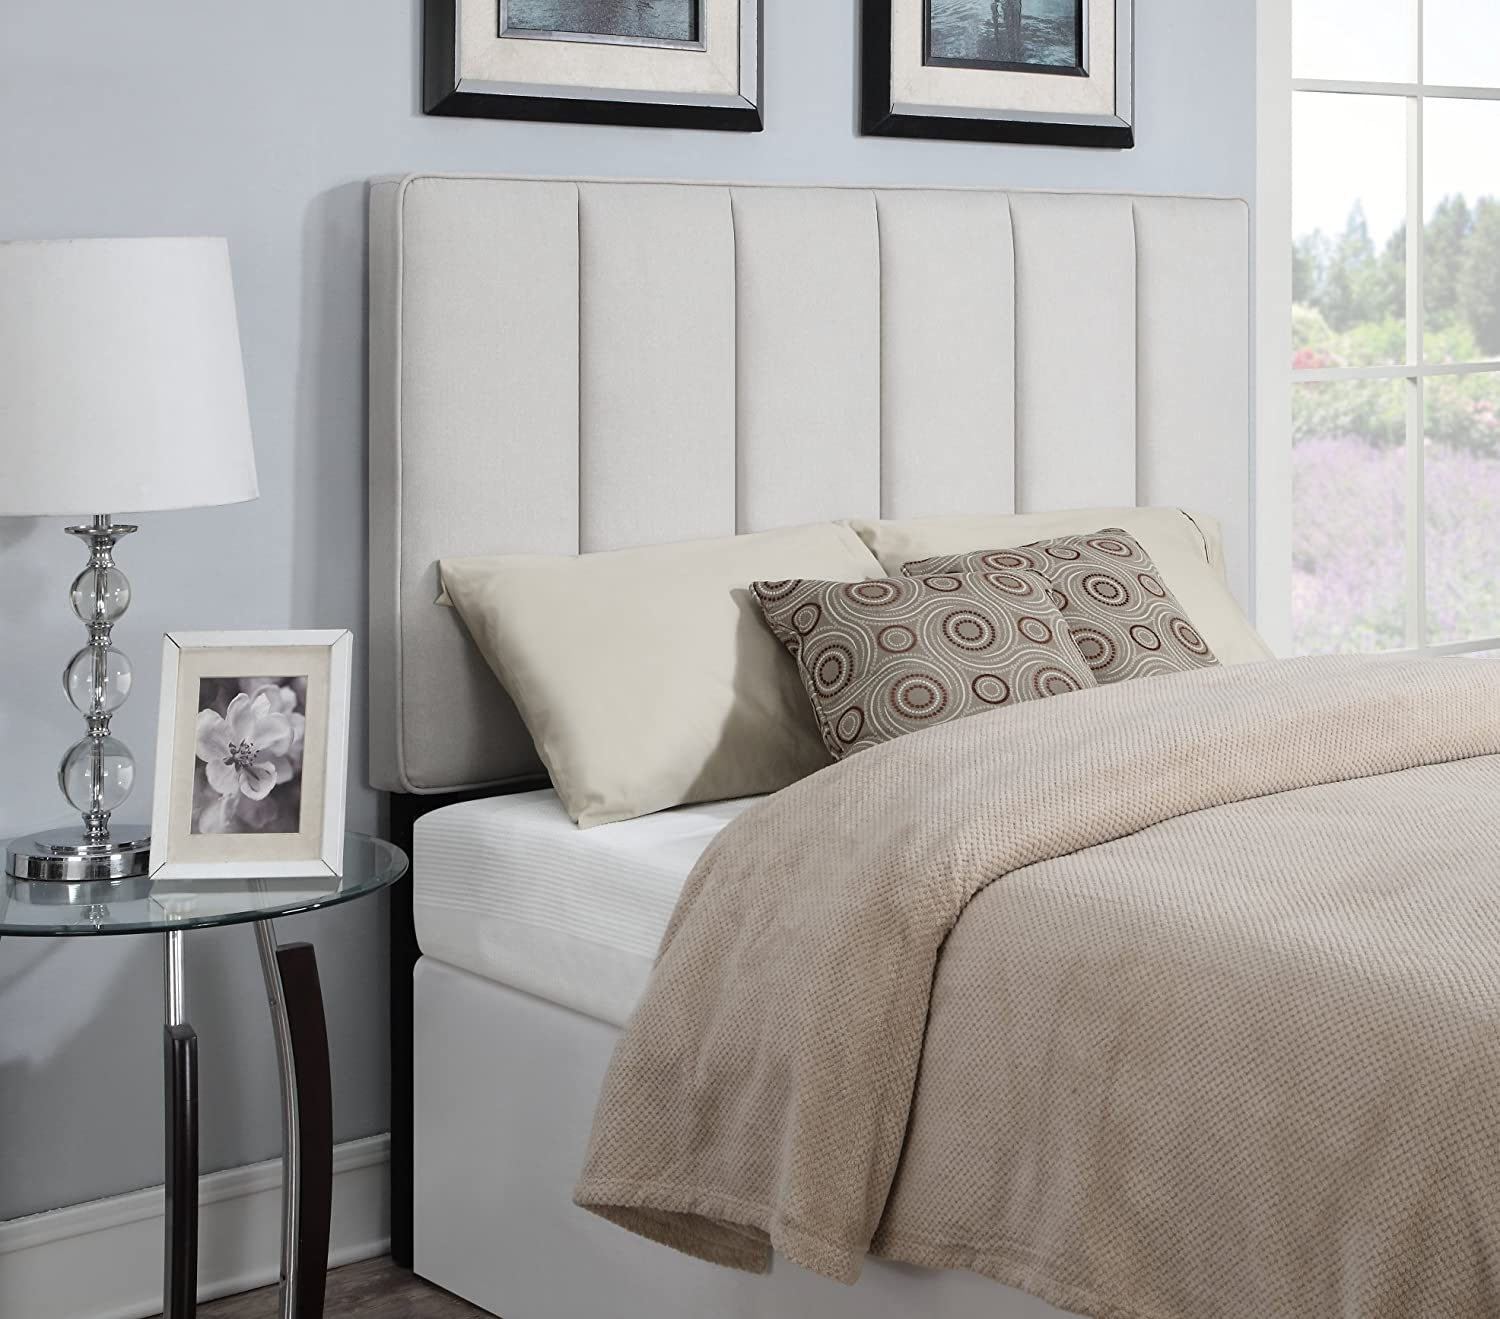 full by queen knight headboard christopher home morris adjustable wingback fabric product garden tufted